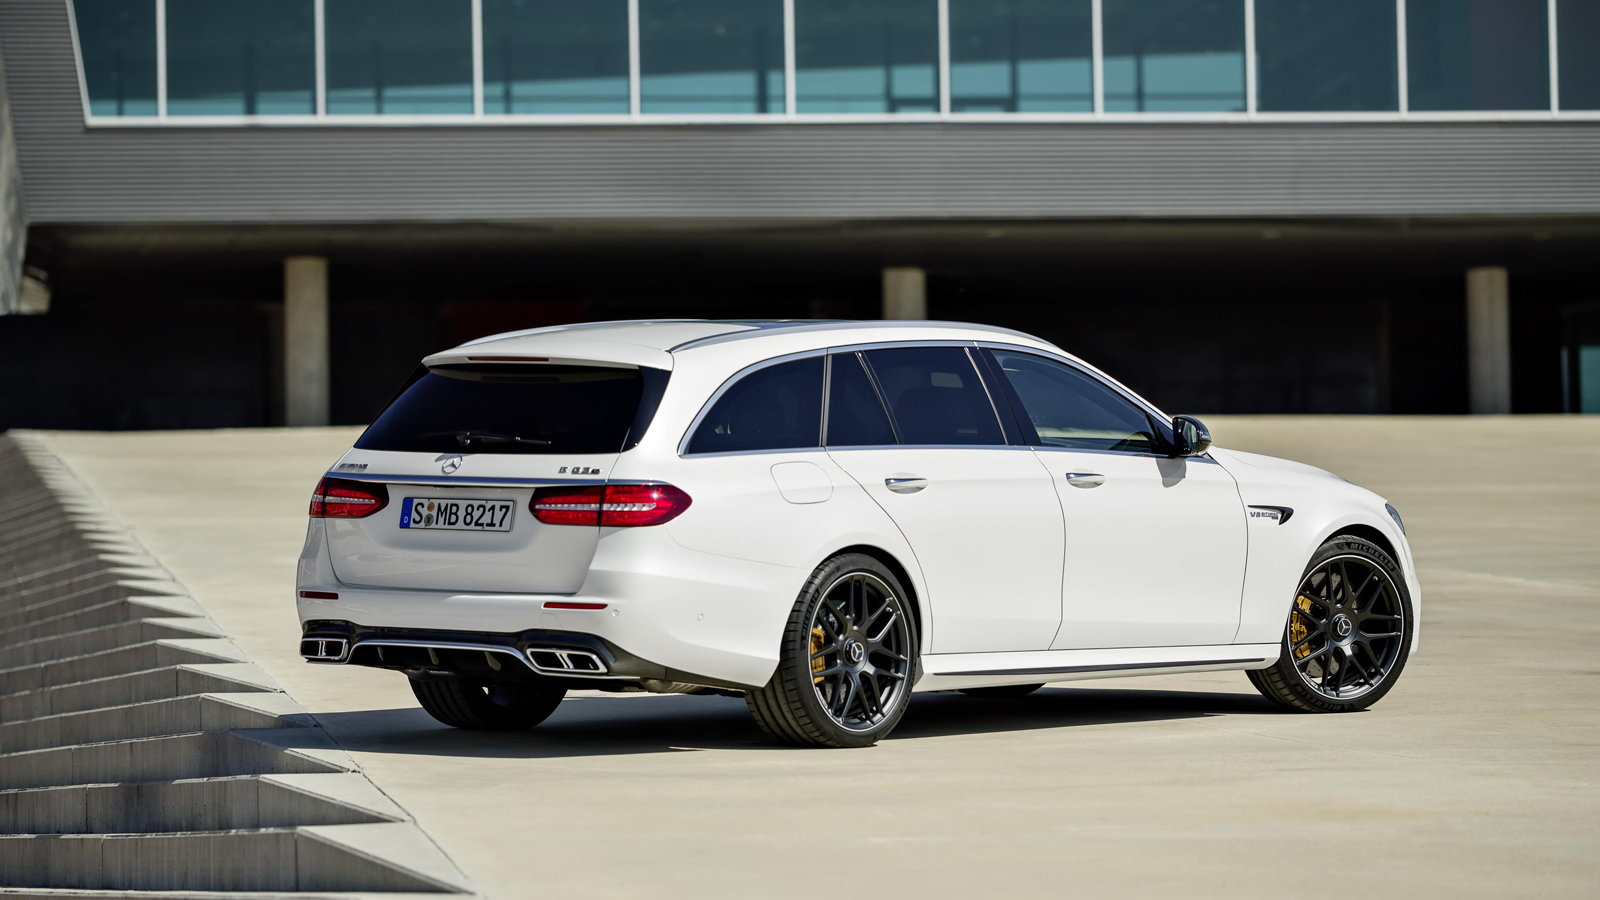 Why the E63 AMG is the Coolest Wagon Ever